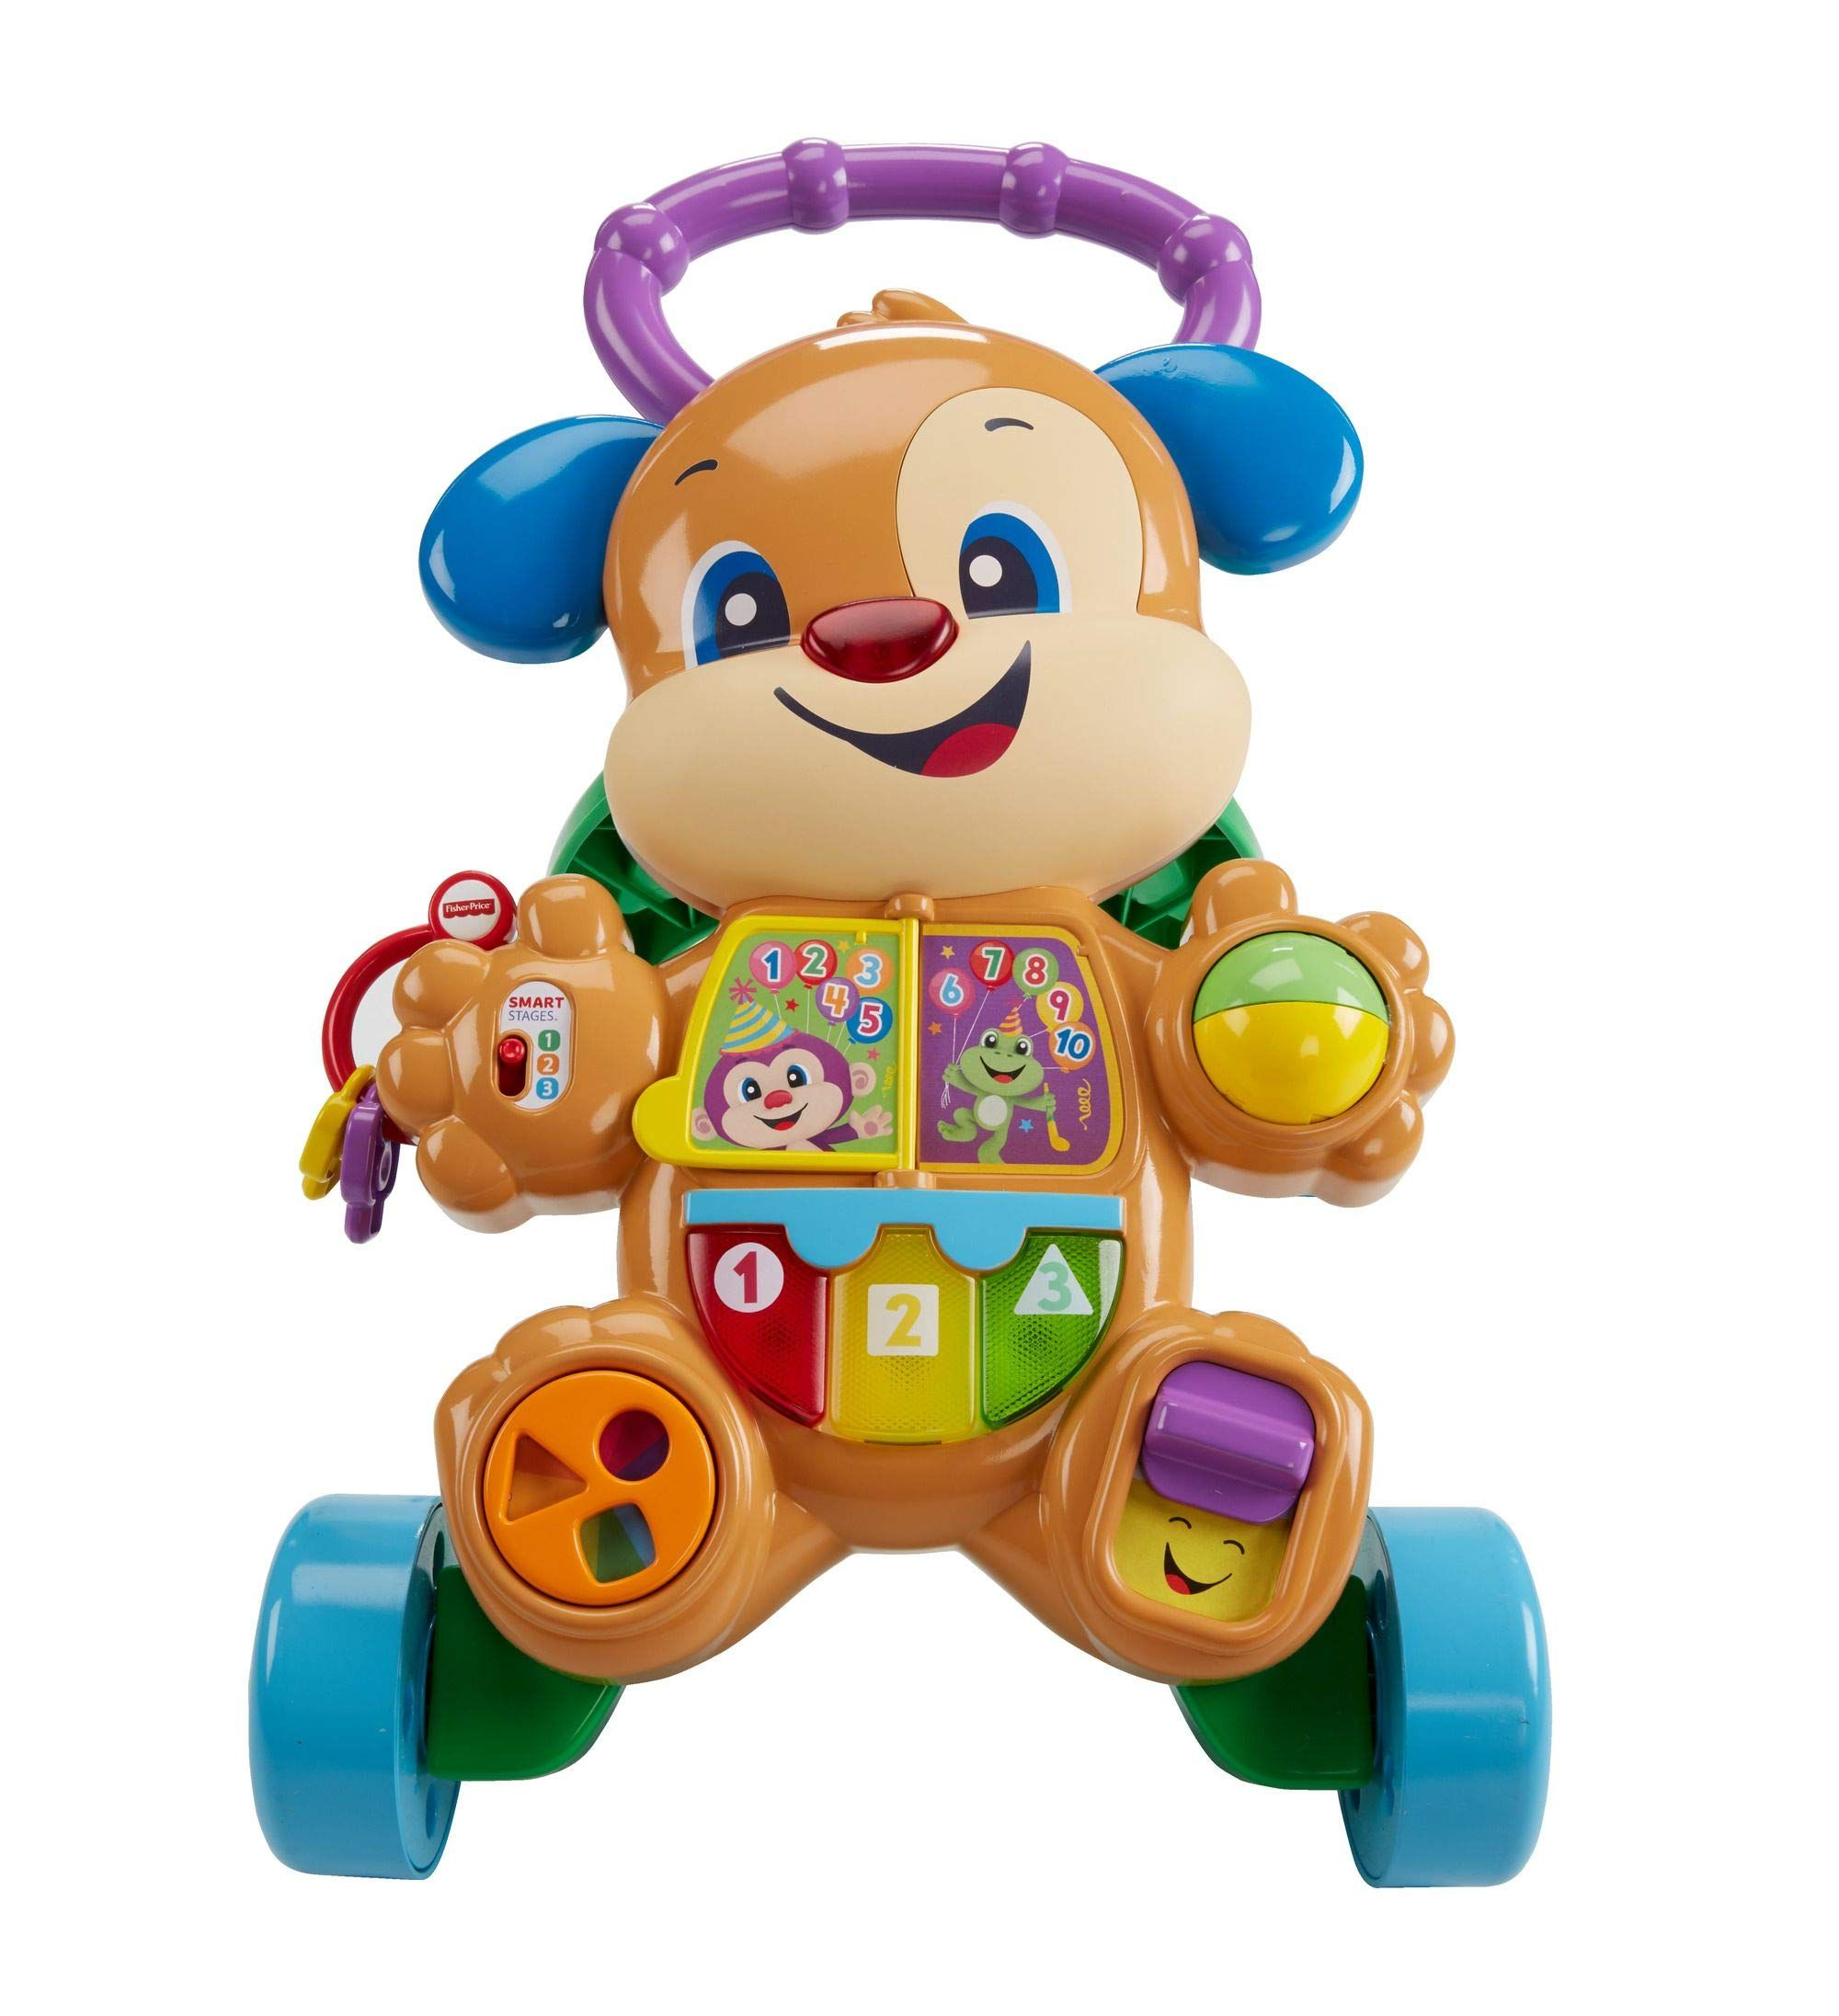 FisherPrice FRC79˜Laugh in 2020 Fisher price, Fisher, Laugh